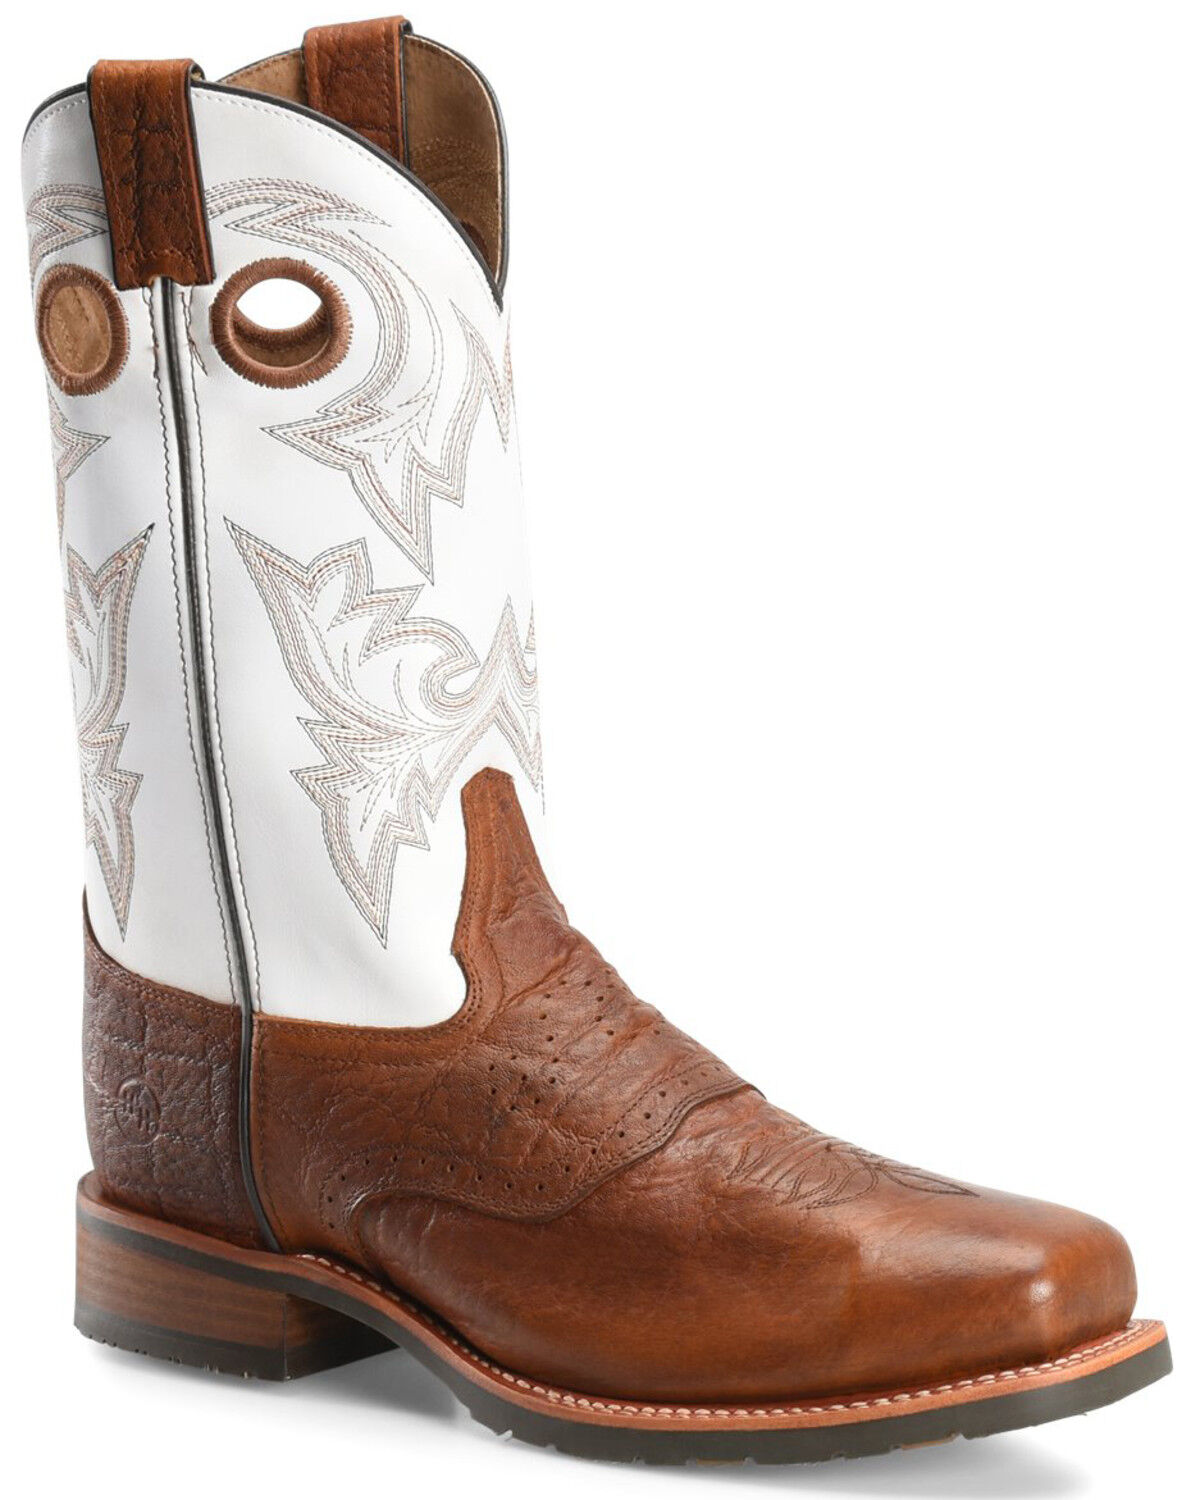 Double H Men's Marty Western Work Boots